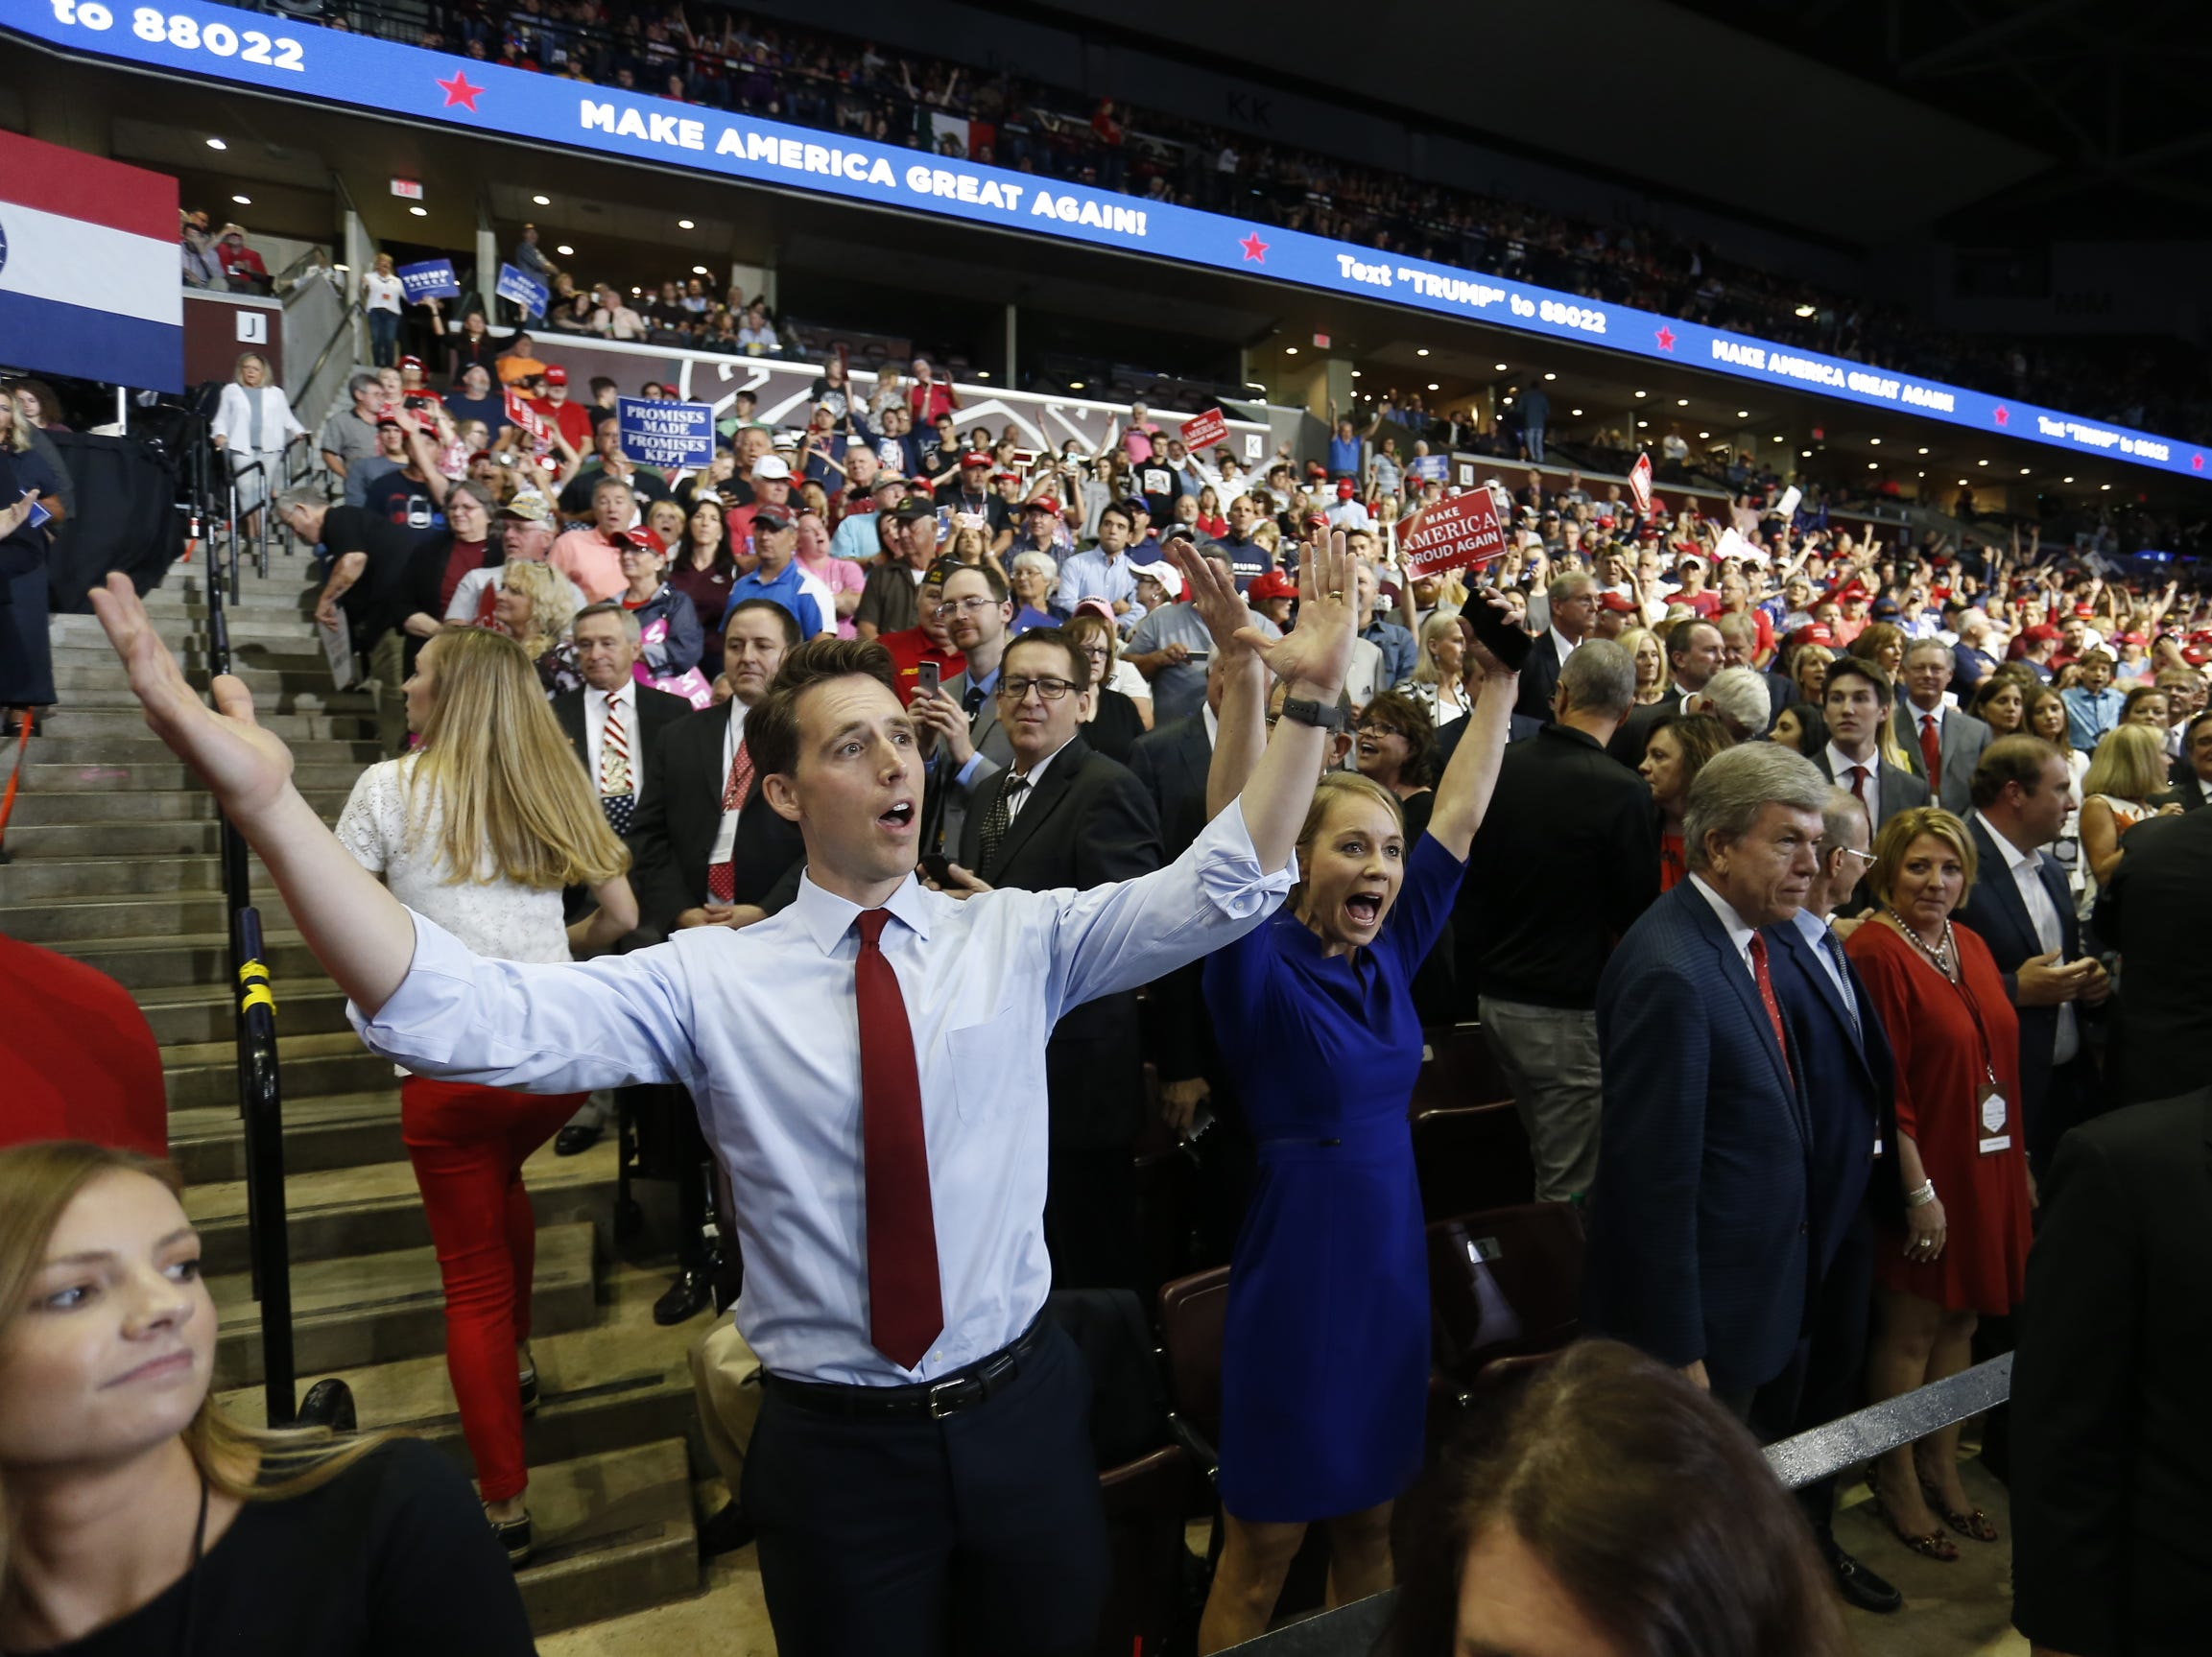 Missouri Attorney General Josh Hawley gestures Friday, Sept. 21, 2018 at President Trump's rally at JQH Arena in Springfield.